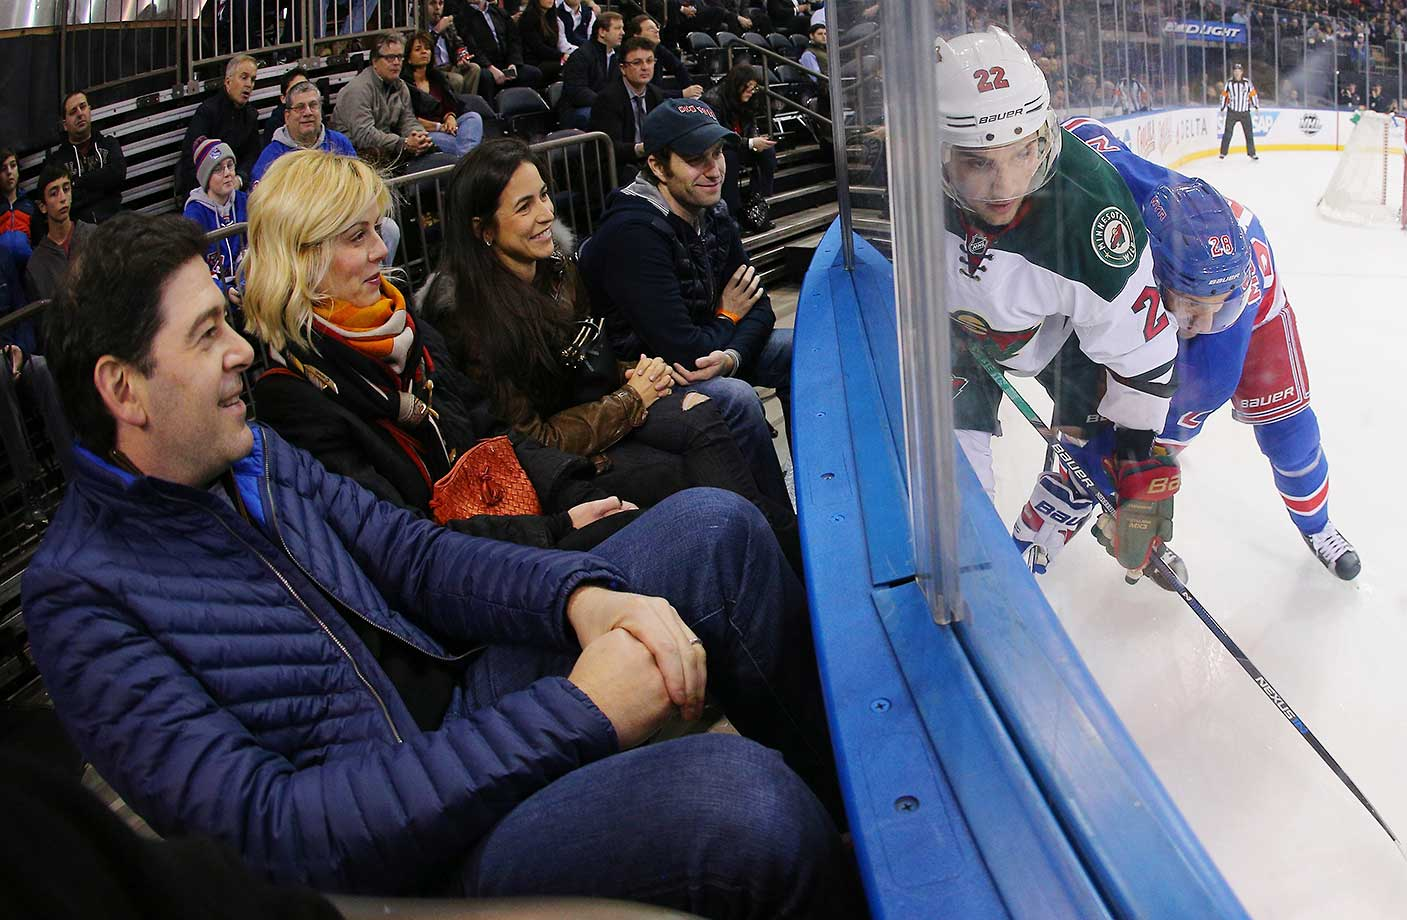 Fans watch the game between the New York Rangers and the Minnesota Wild at Madison Square Garden.